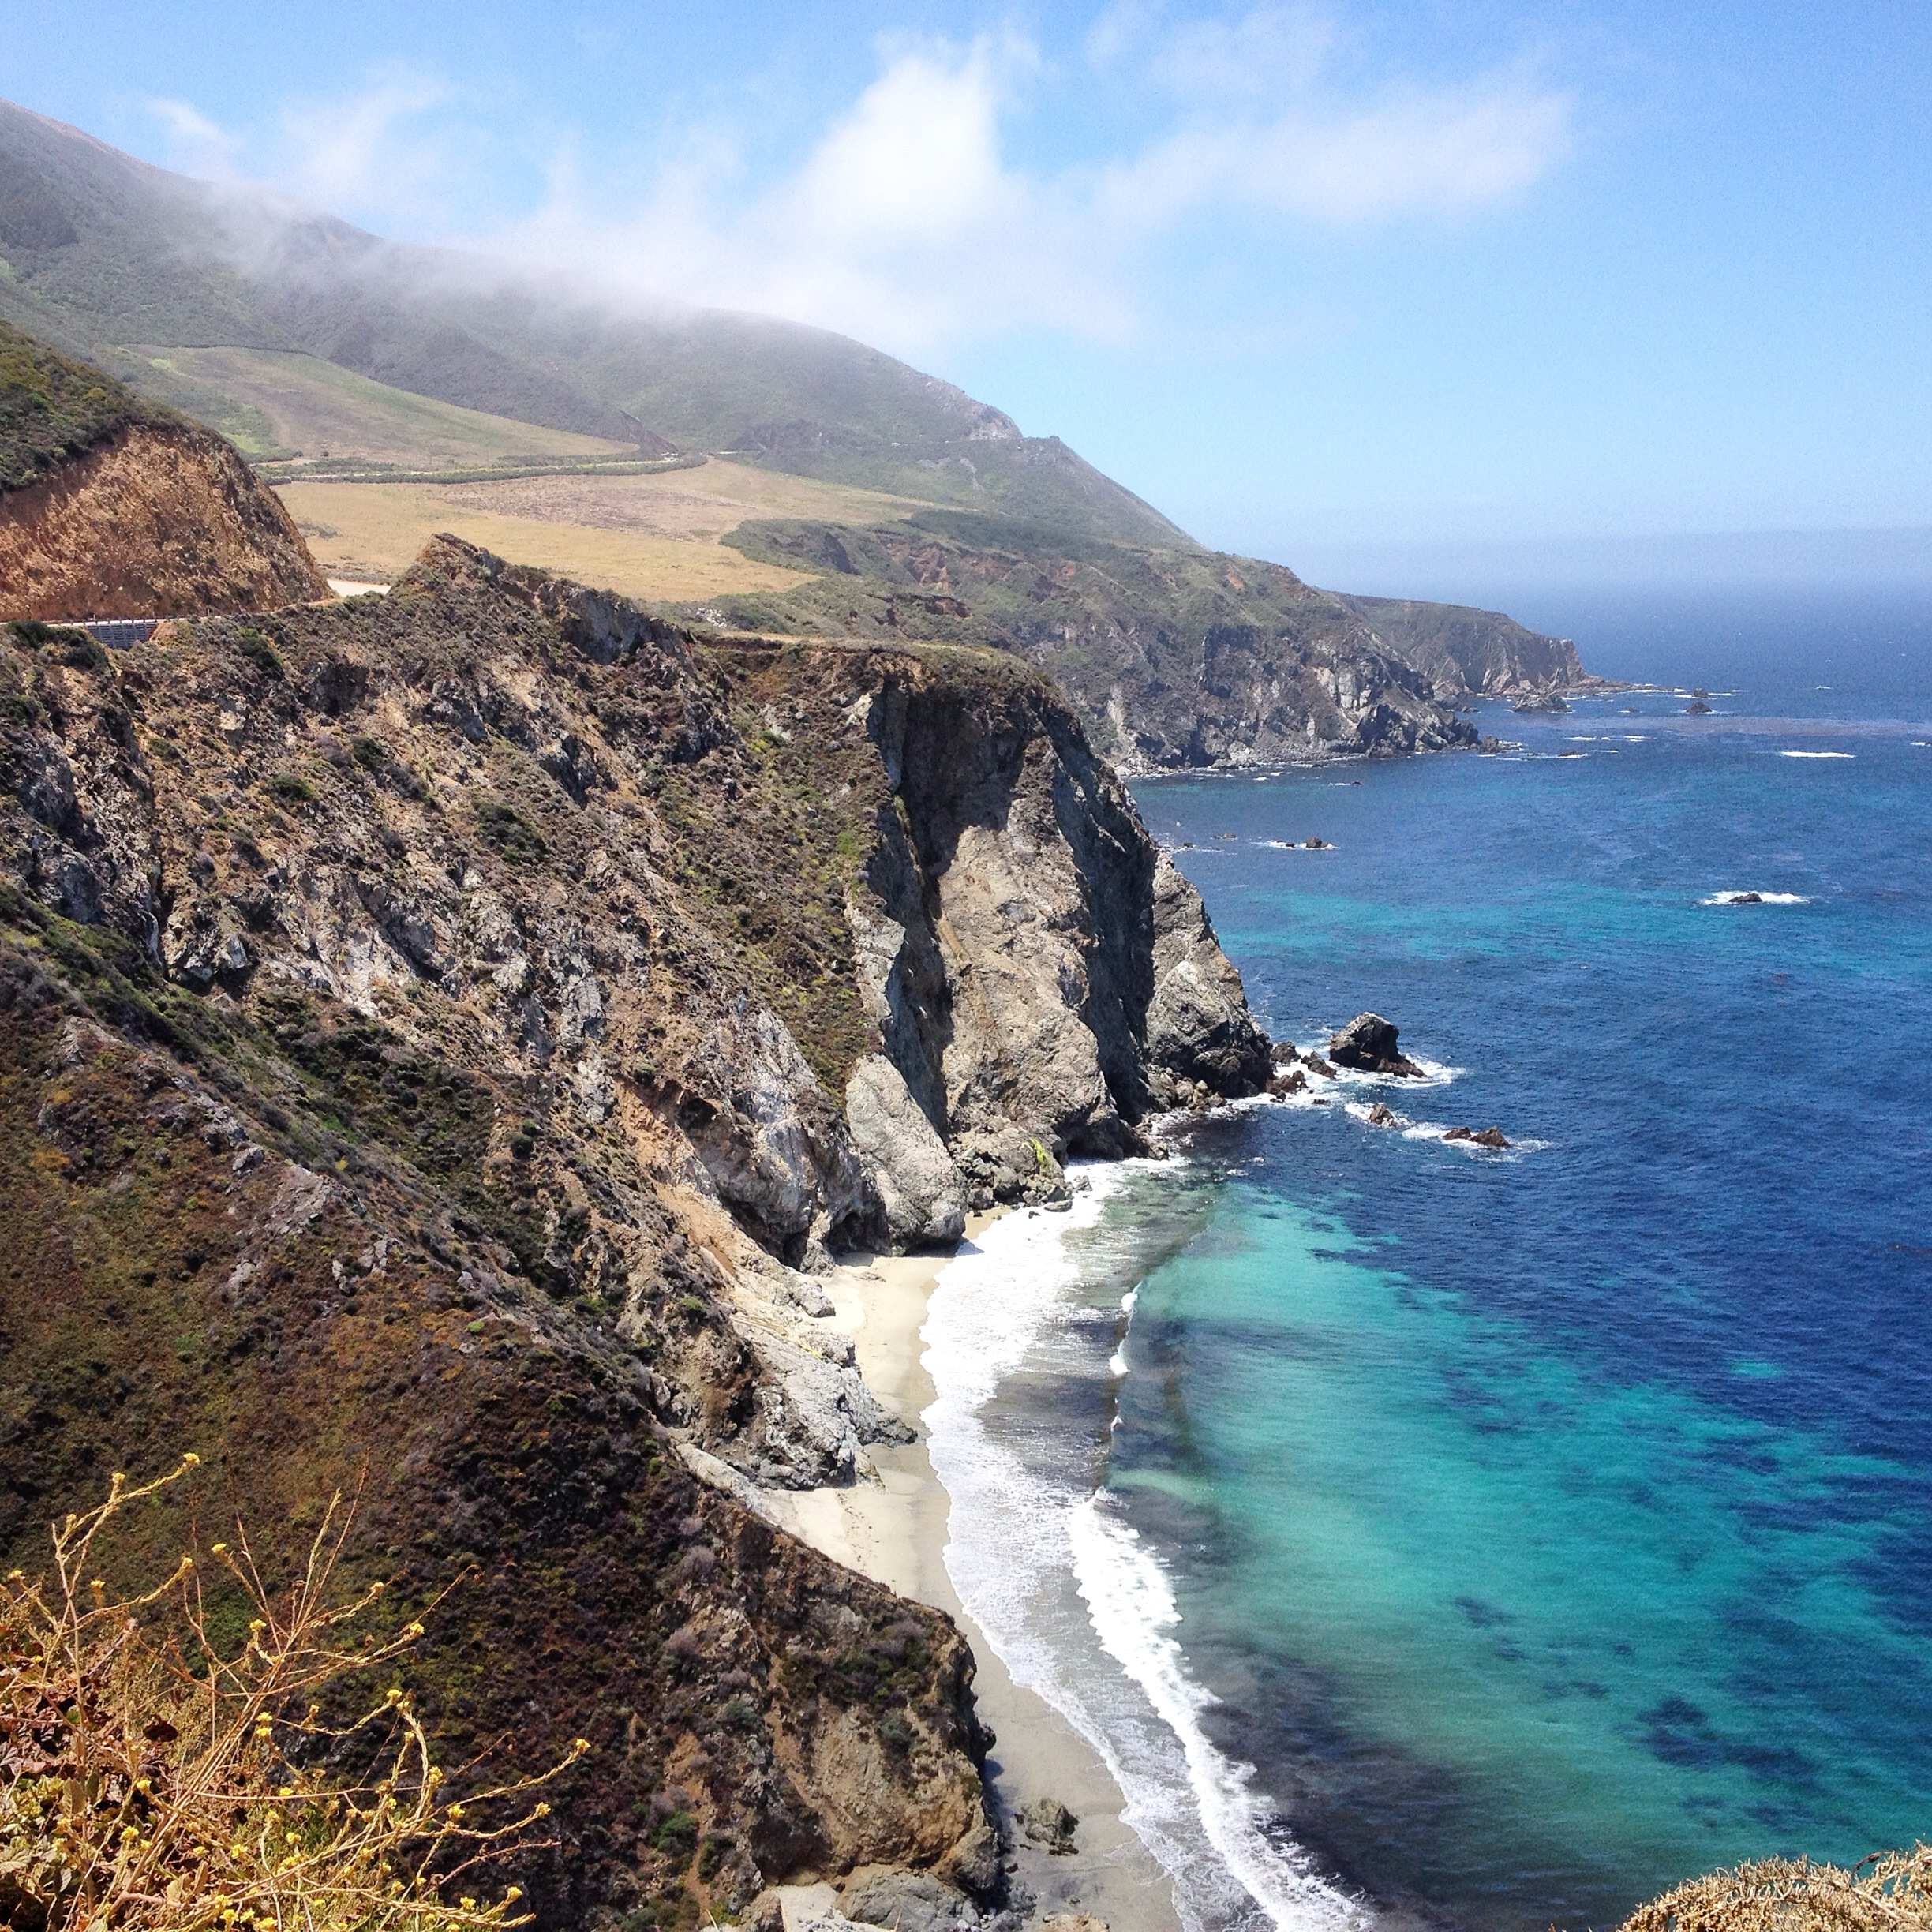 The Perfect Pacific Coast Highway Road Trip (Travel + Leisure)   California's Highway 1 is a classic American route that should be on everyone's bucket list. Here's how to do it right.